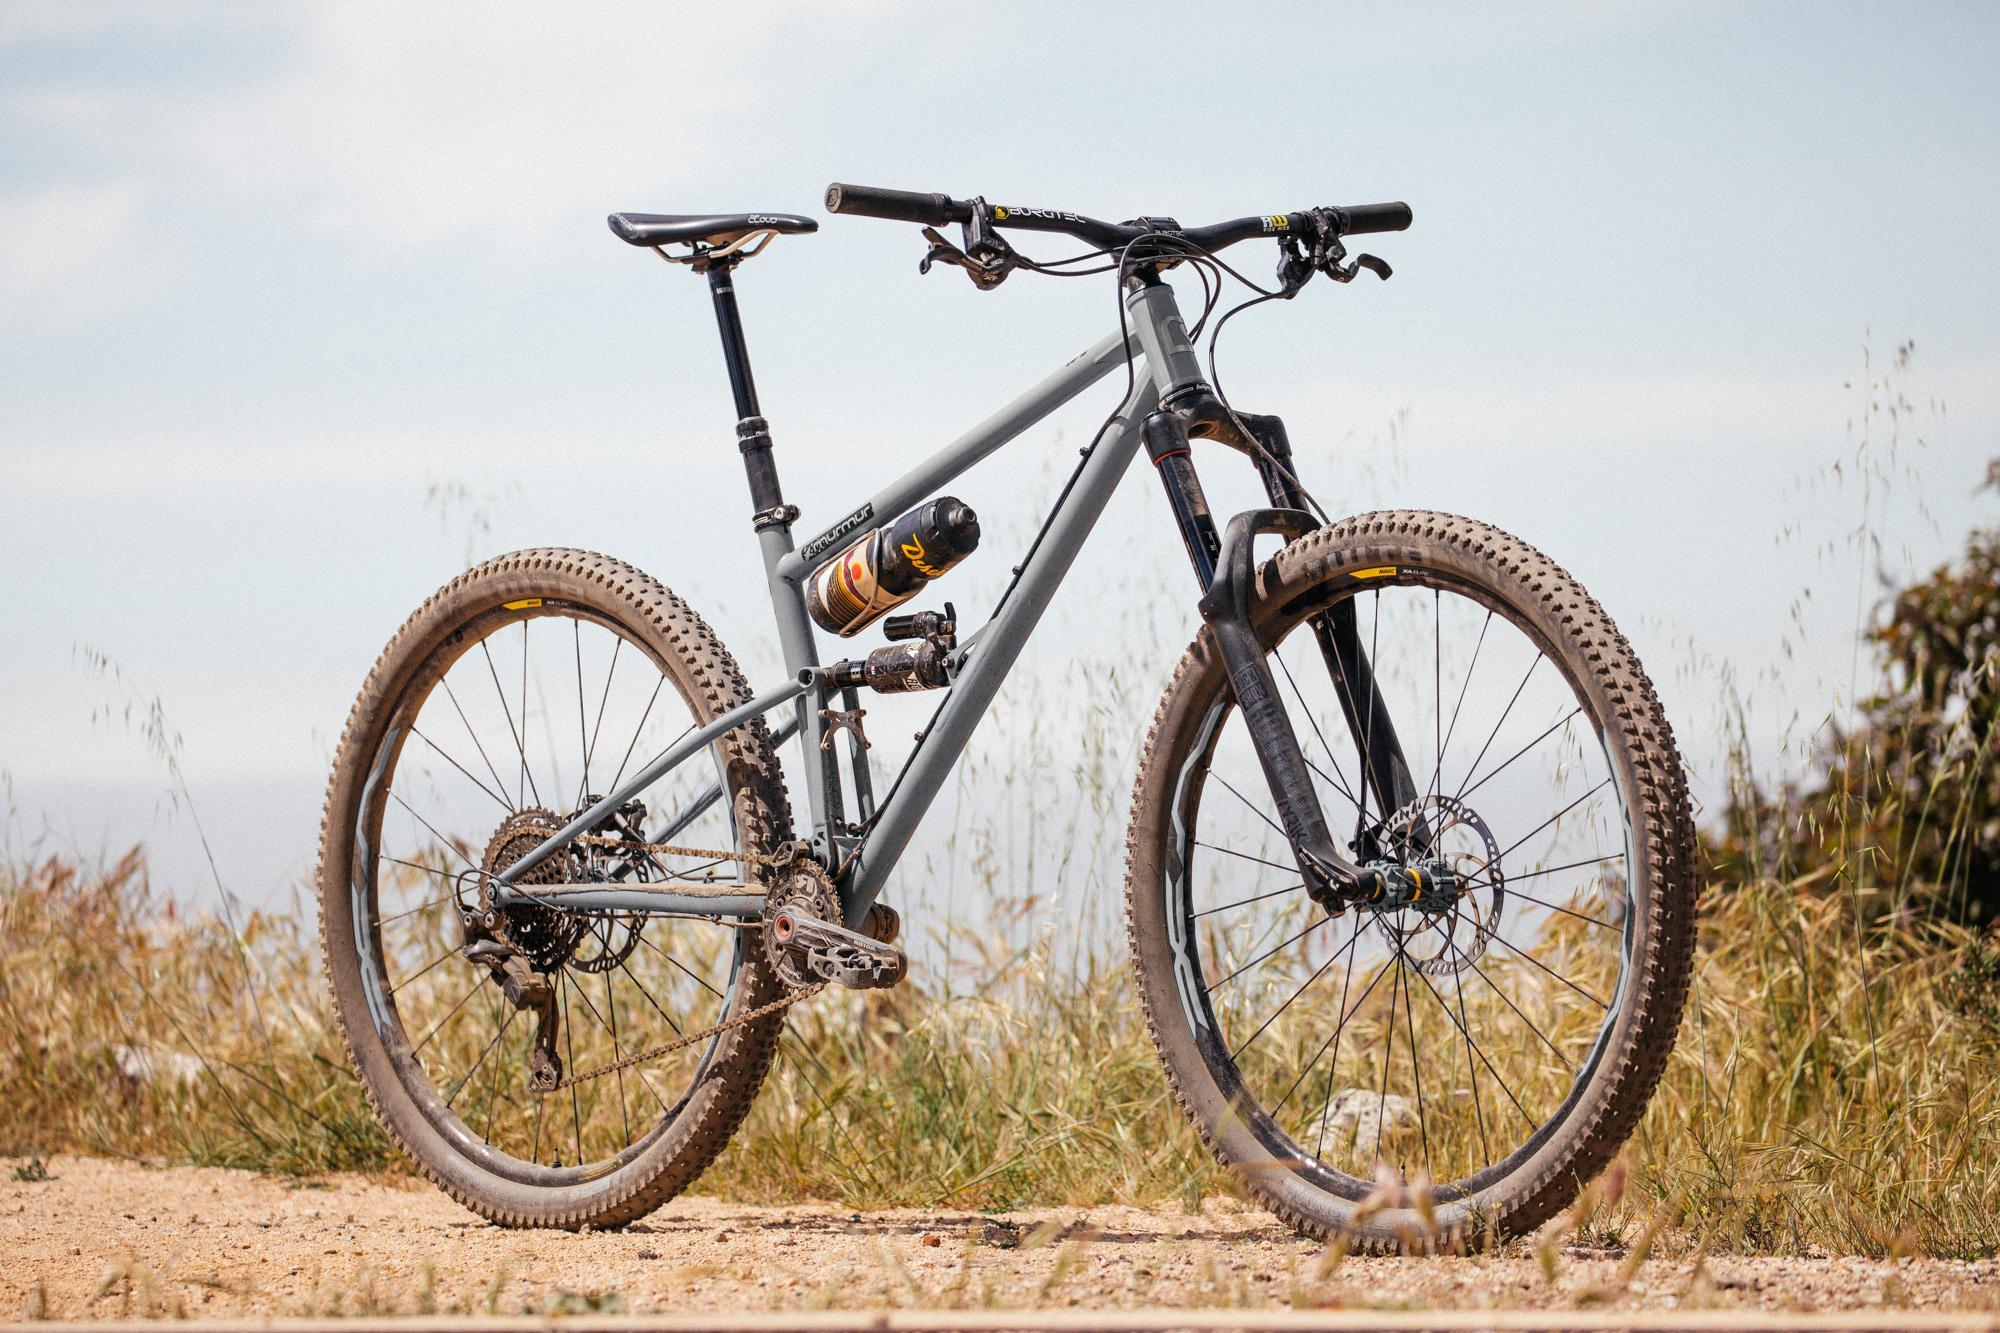 The Starling Murmur is a Steel Full Suspension 29er